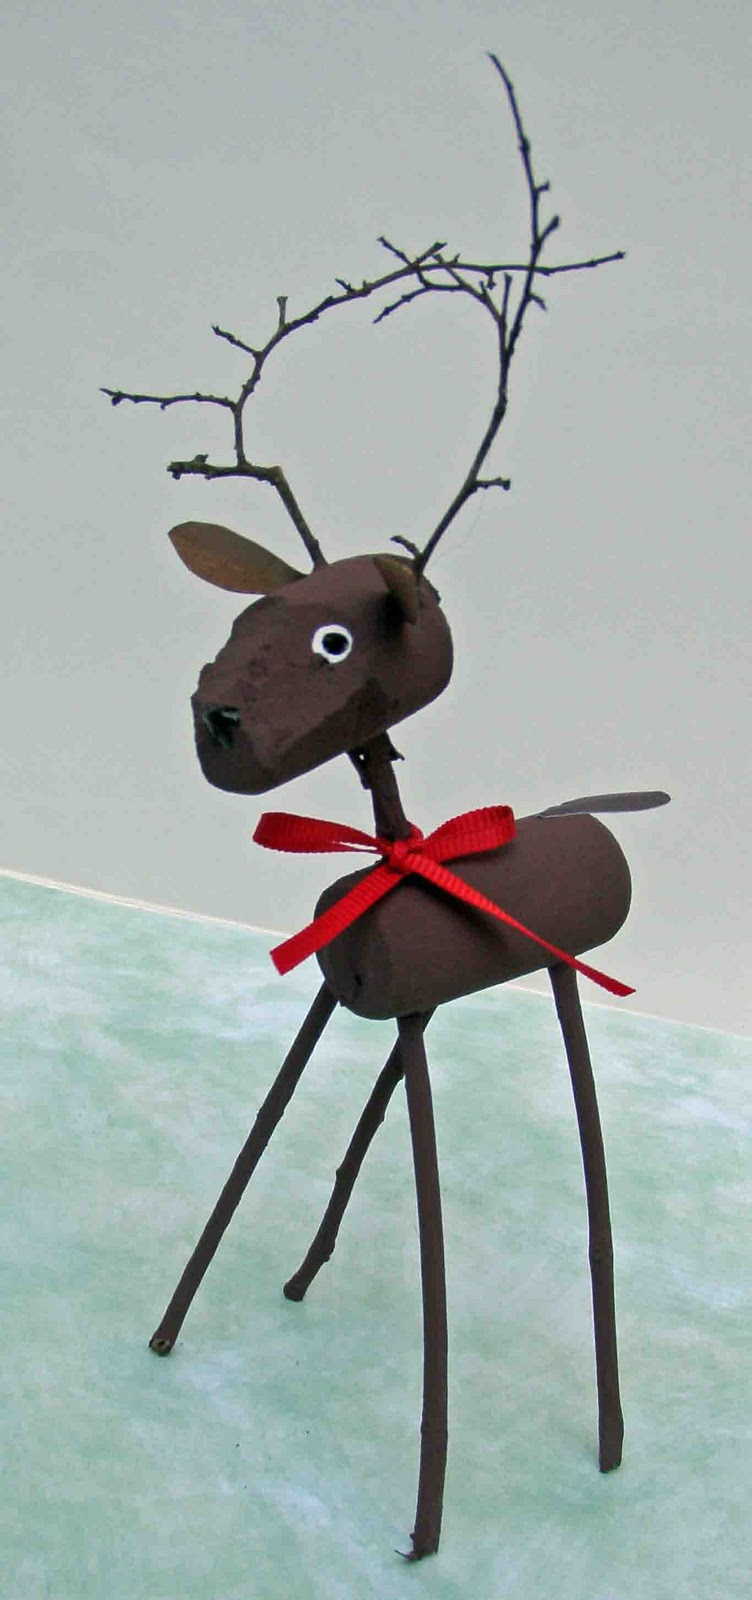 Crack of dawn crafts reindeer cork craft for Reindeer project